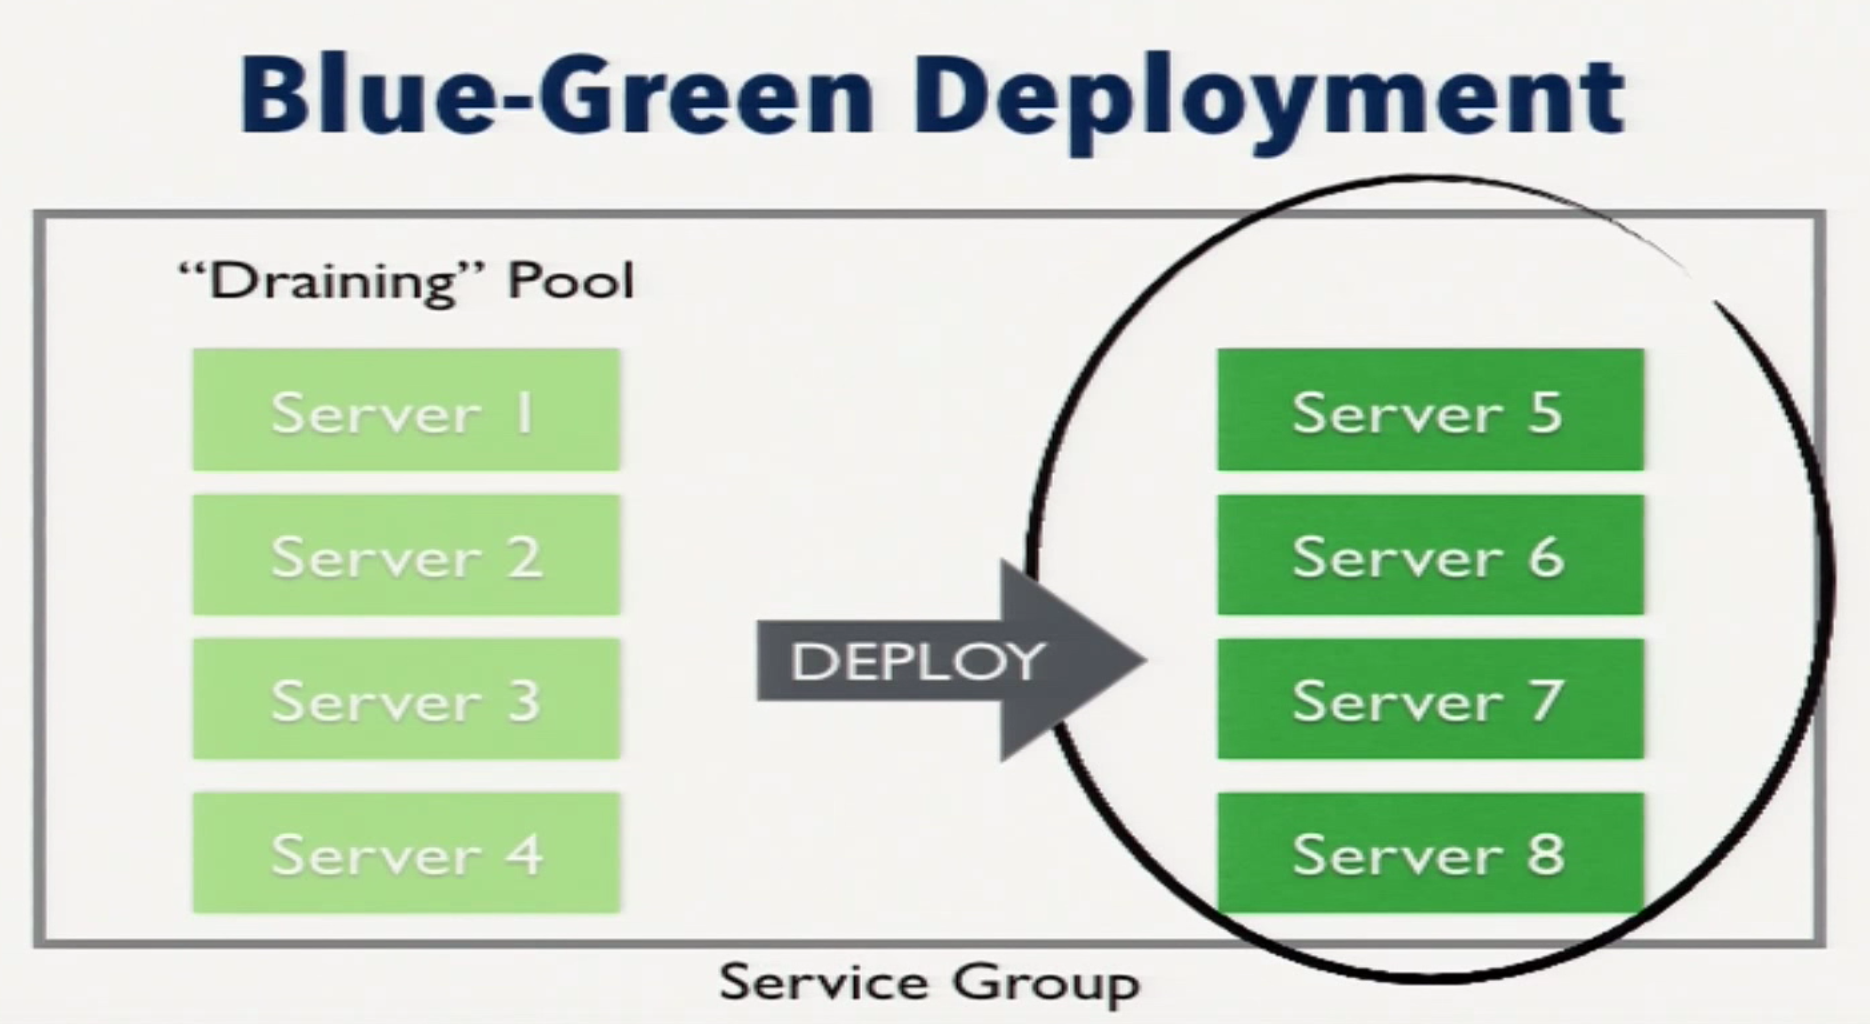 A Draining Server Pool in a Blue-Green Deployment